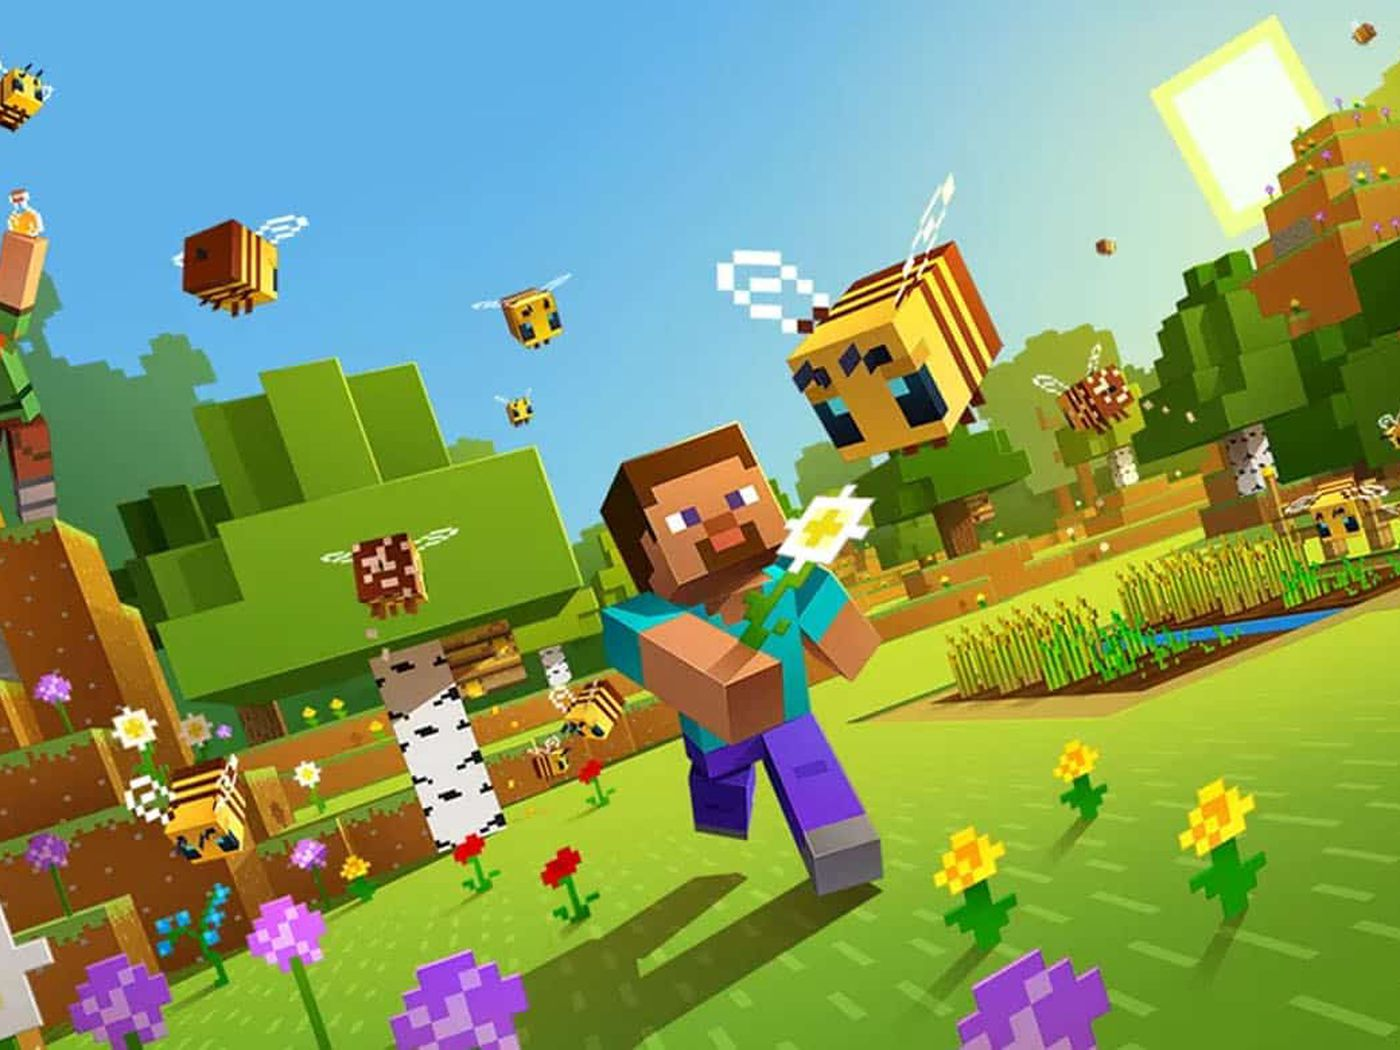 Minecraft is now available for PlayStation VR as a free update